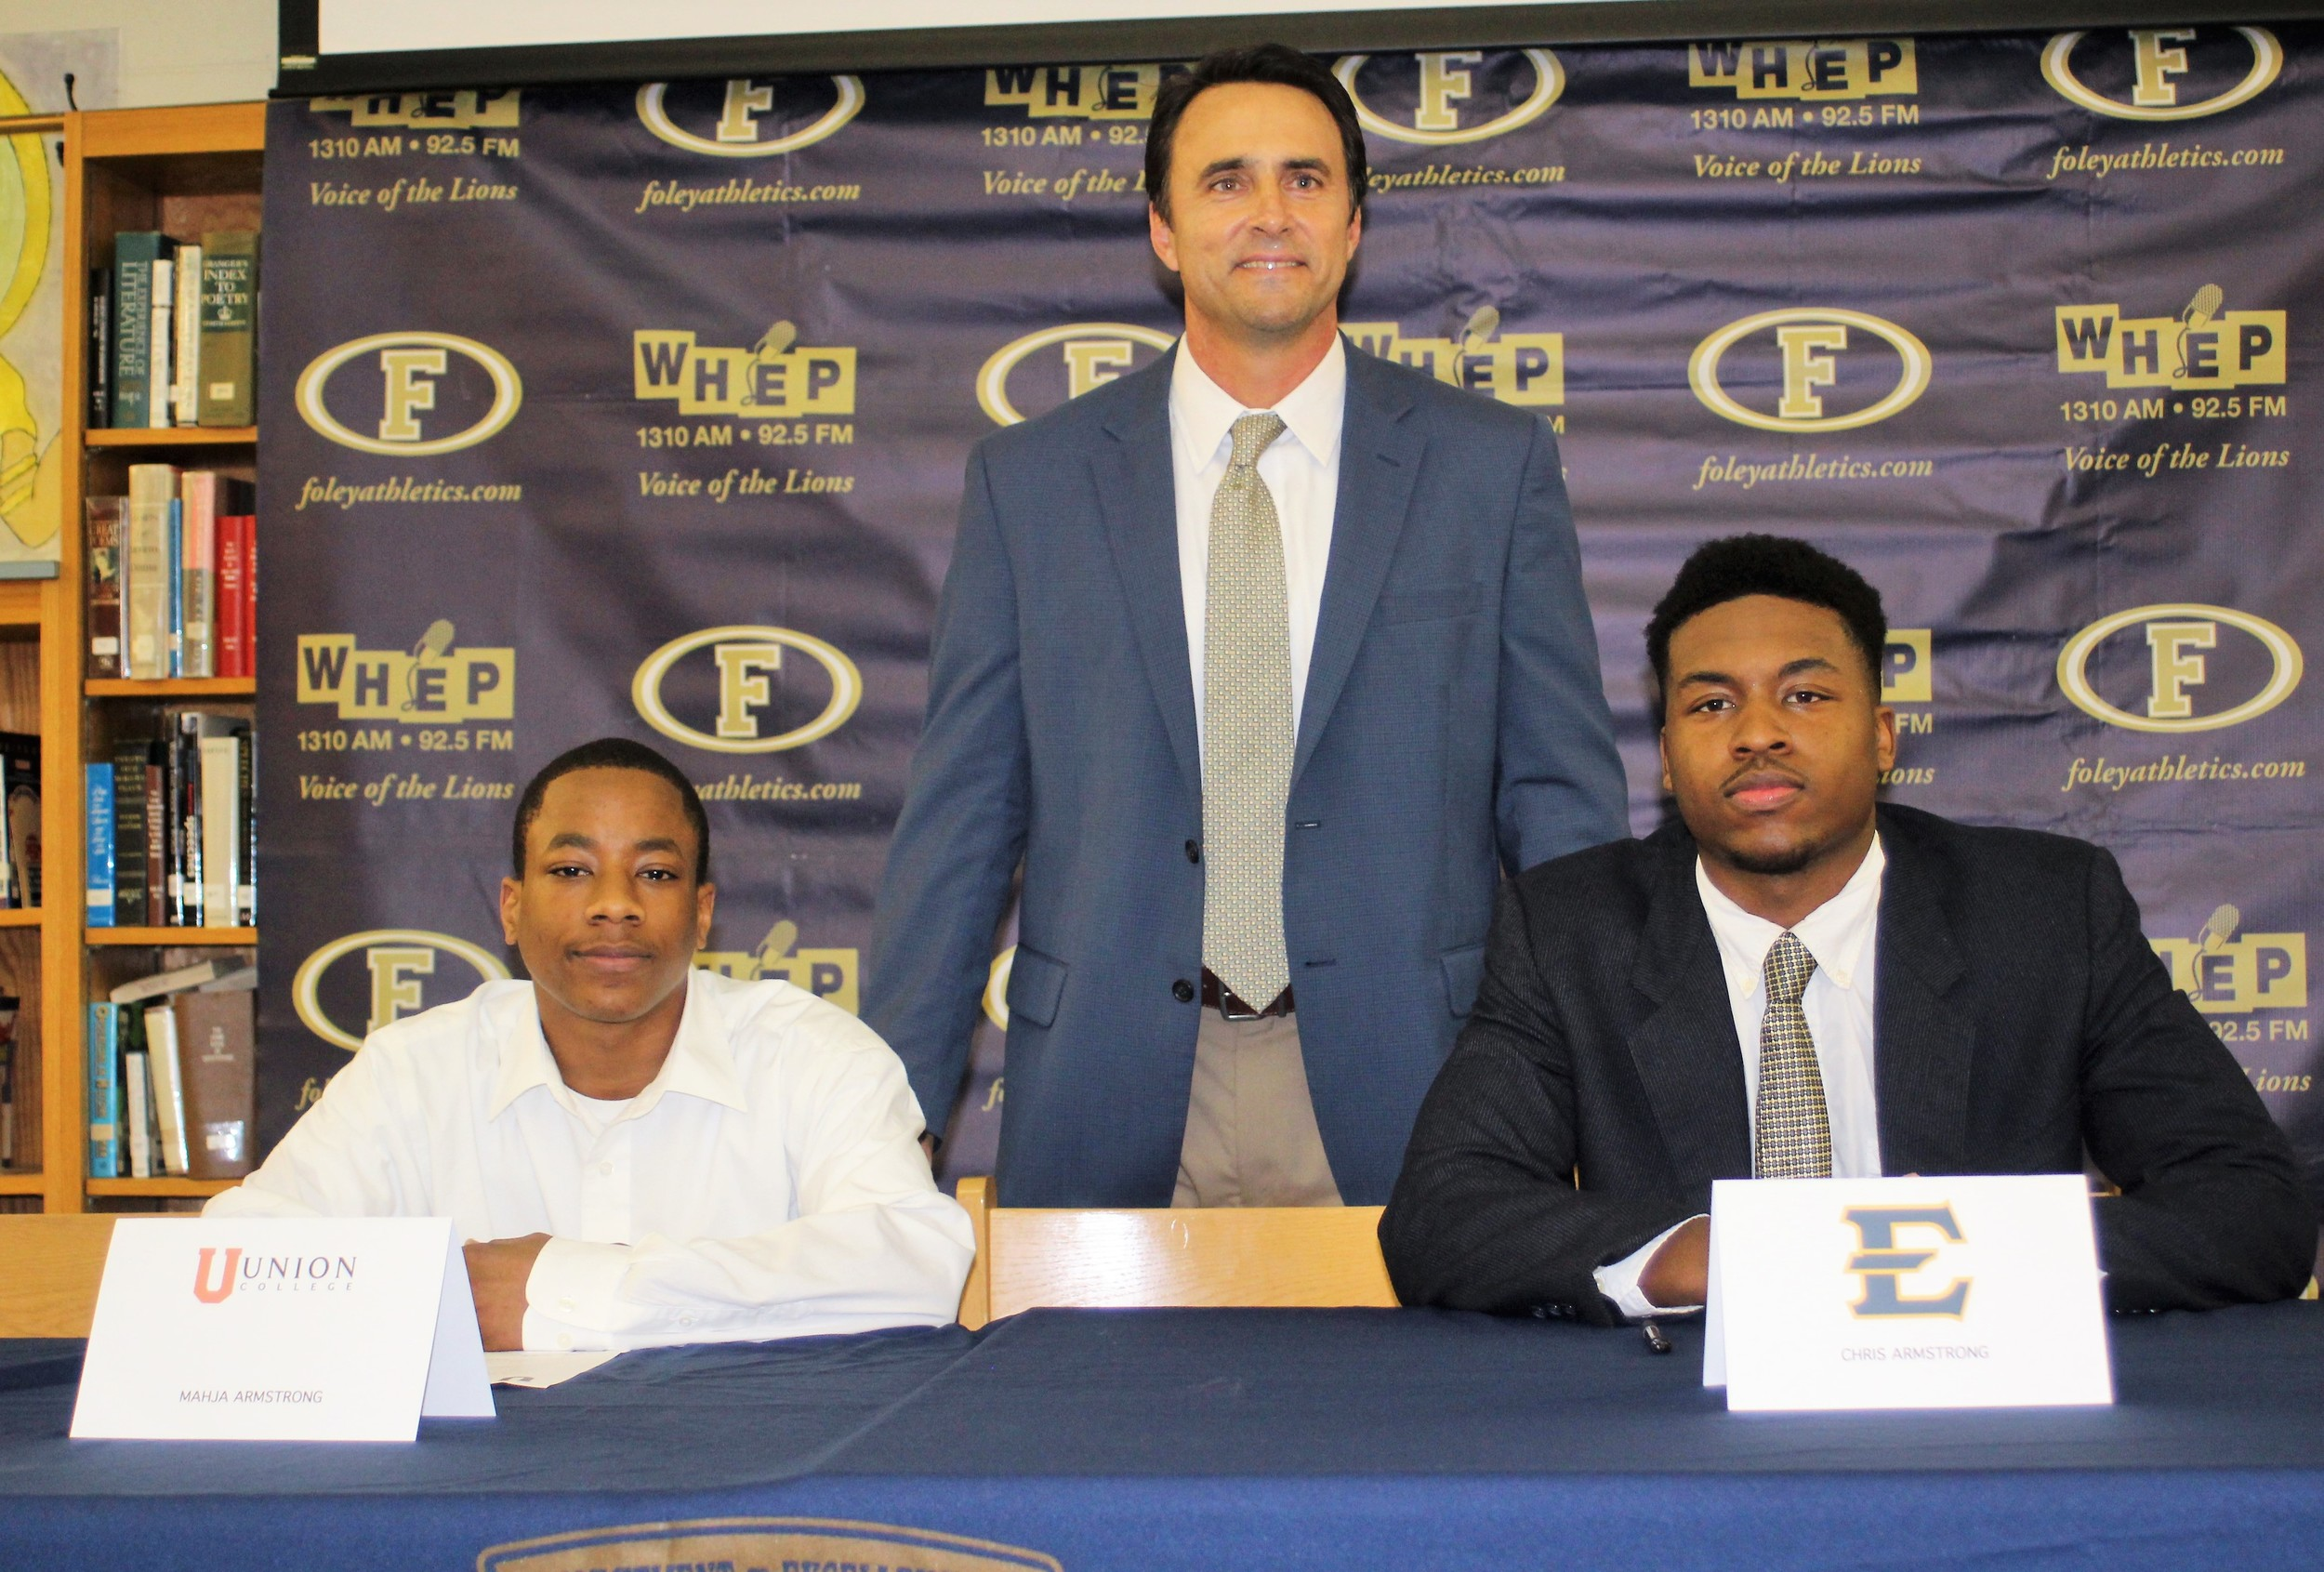 Signing day at Foley High. From left, Mahja Armstrong, FHS head coach Tad Niblett and Chris Armstrong.